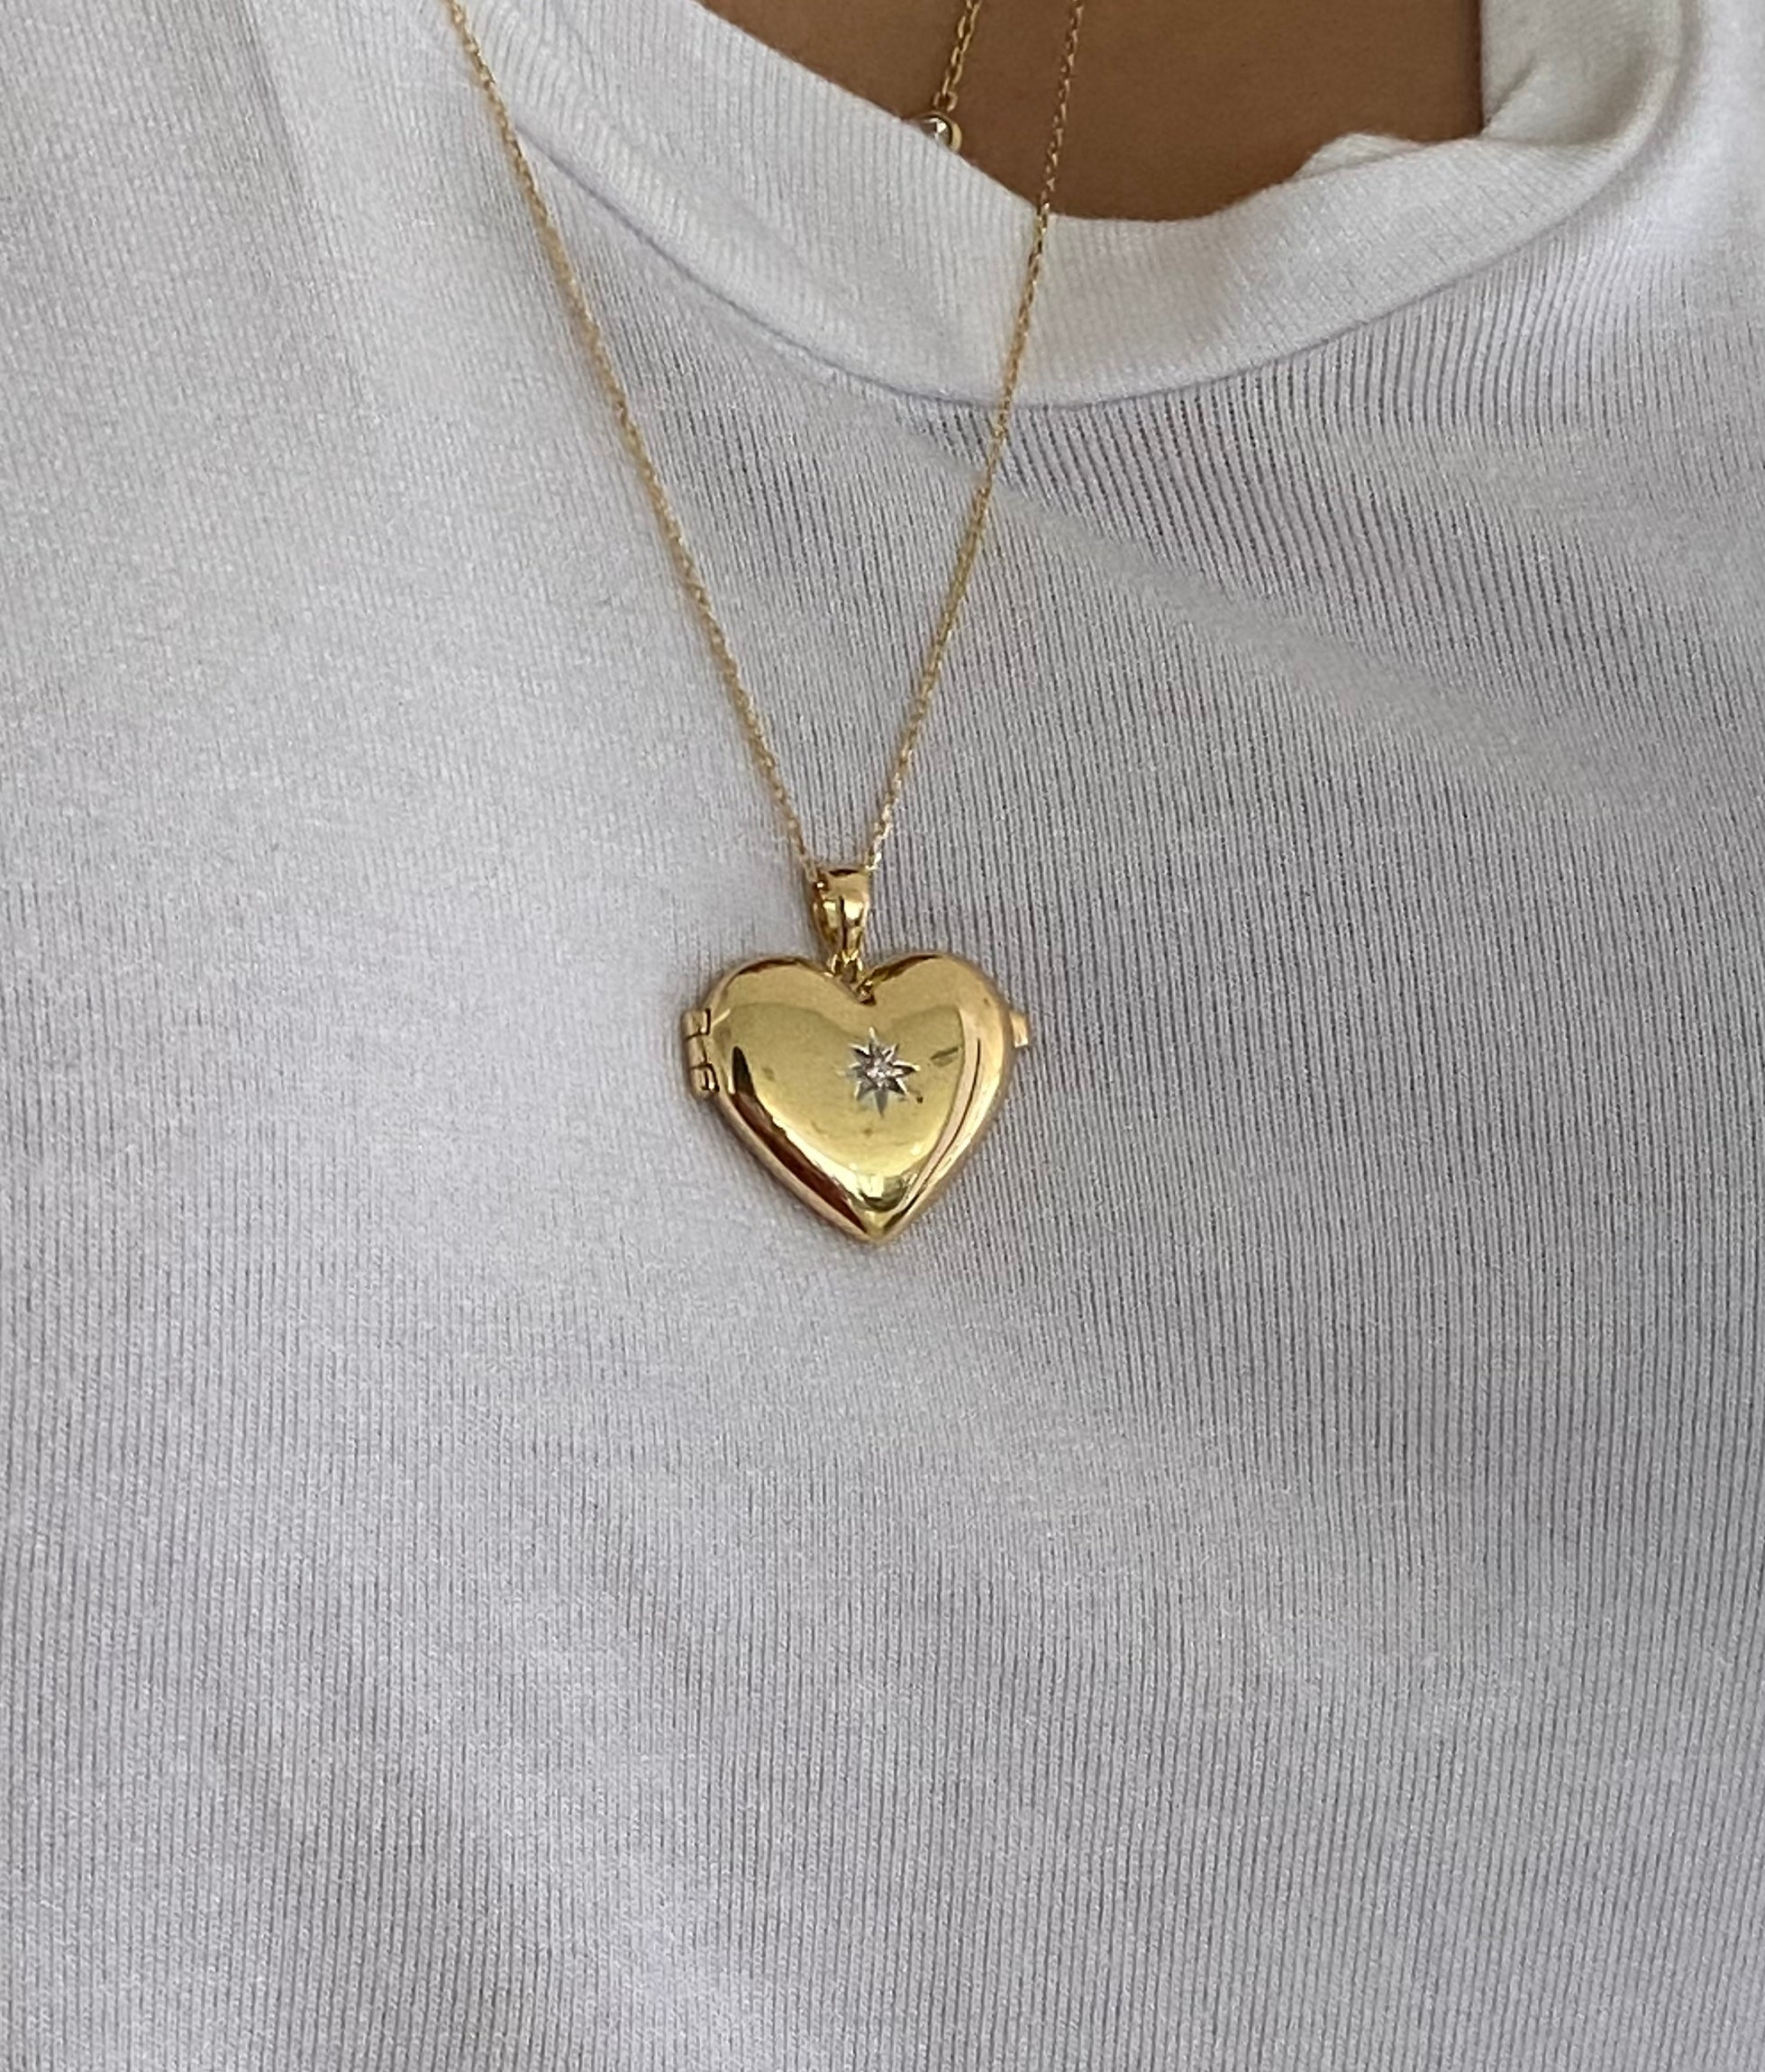 Heart Locket.